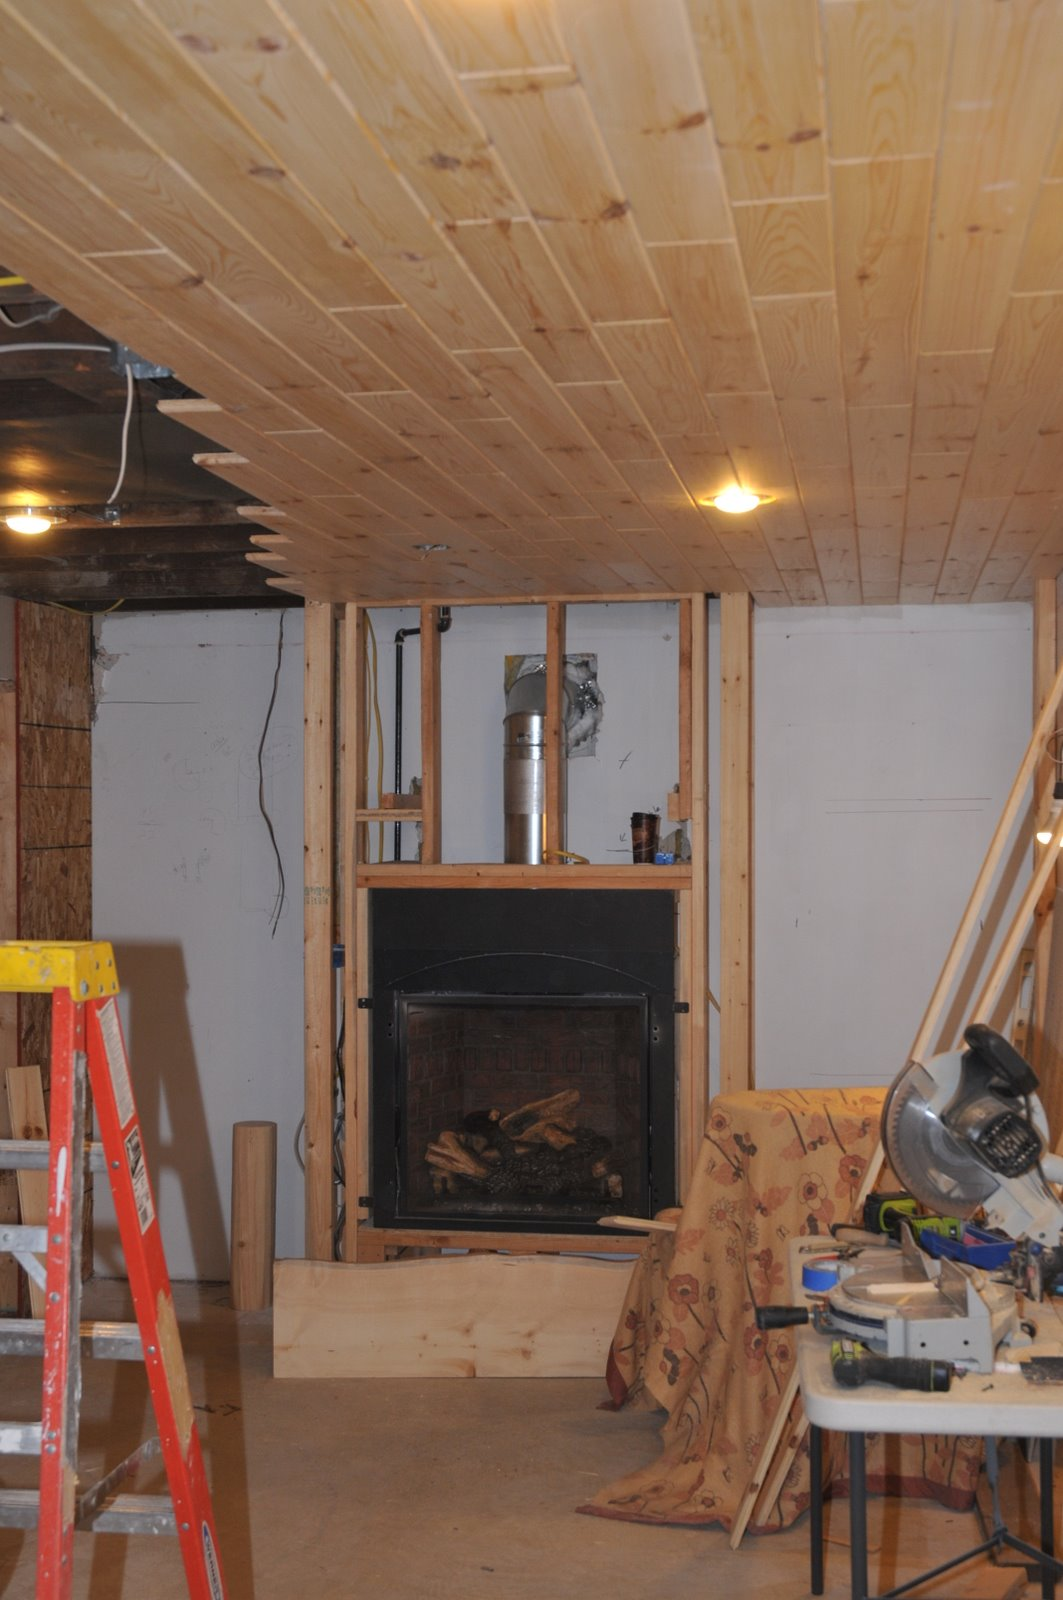 A Couple More Hours Work Will Complete The Ceiling Immediate Objective Was To Get Wood Up Near Fireplace So Mason Can Install